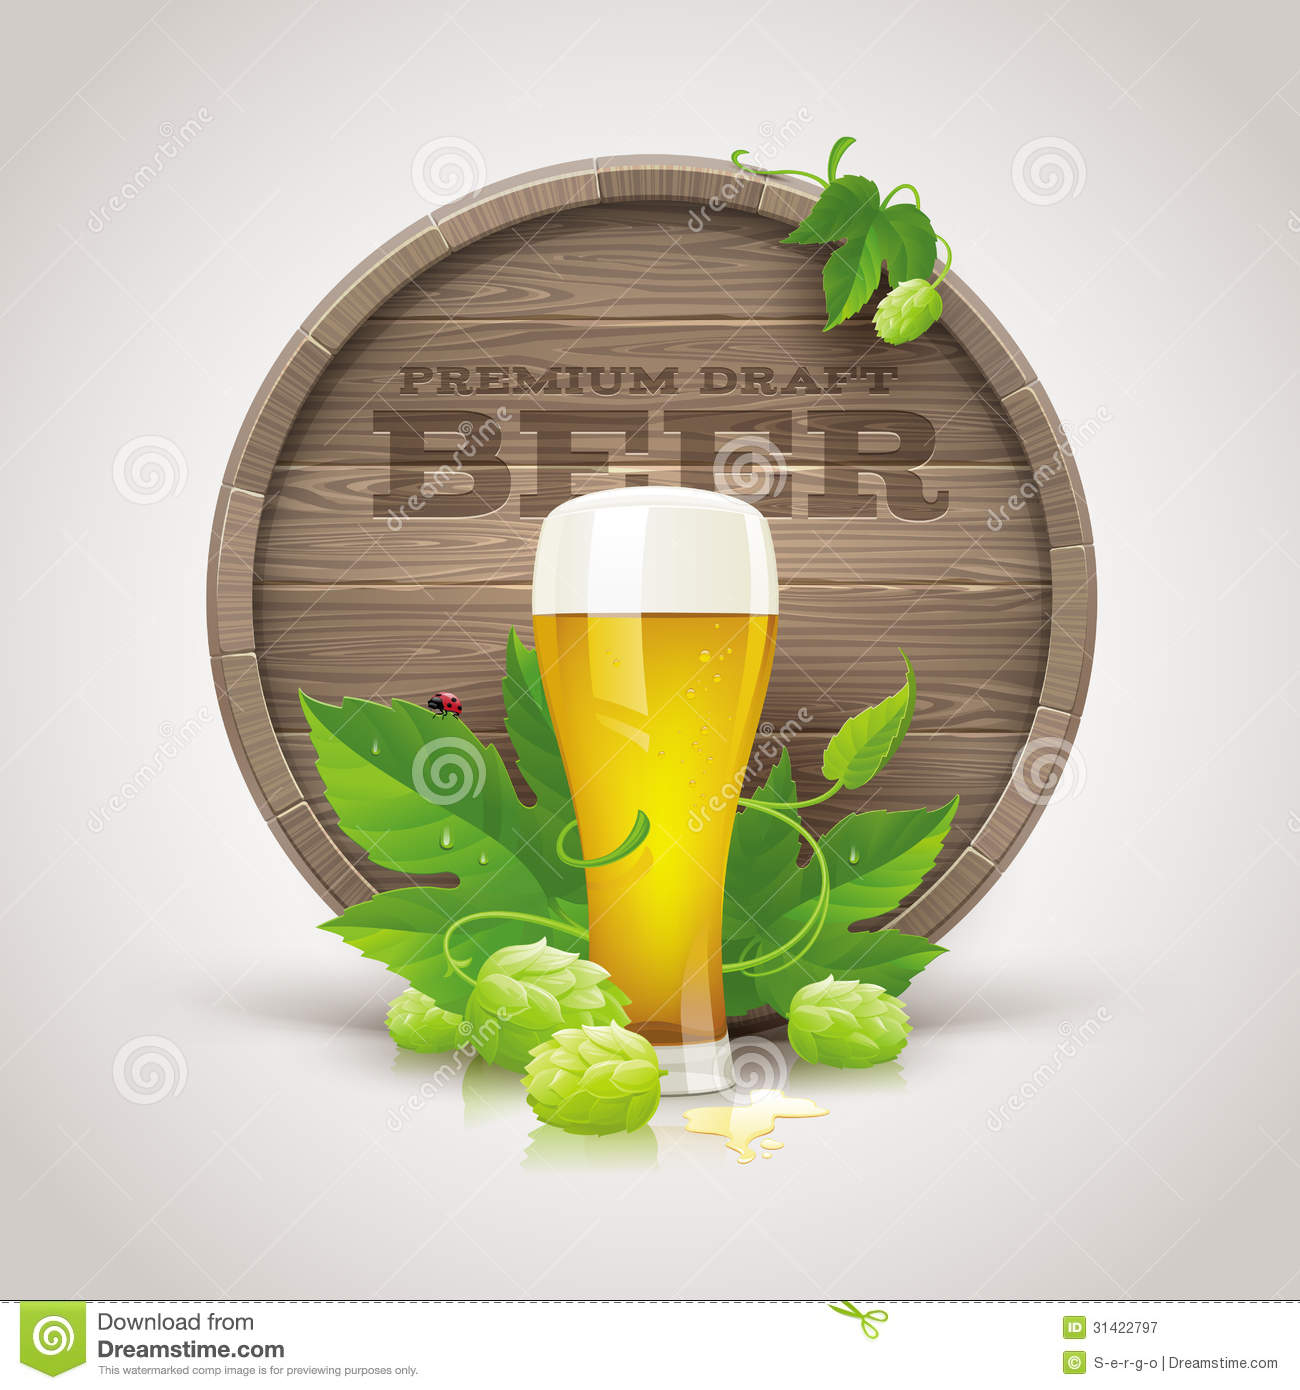 Wooden cask, beer glass, ripe hops and leaves